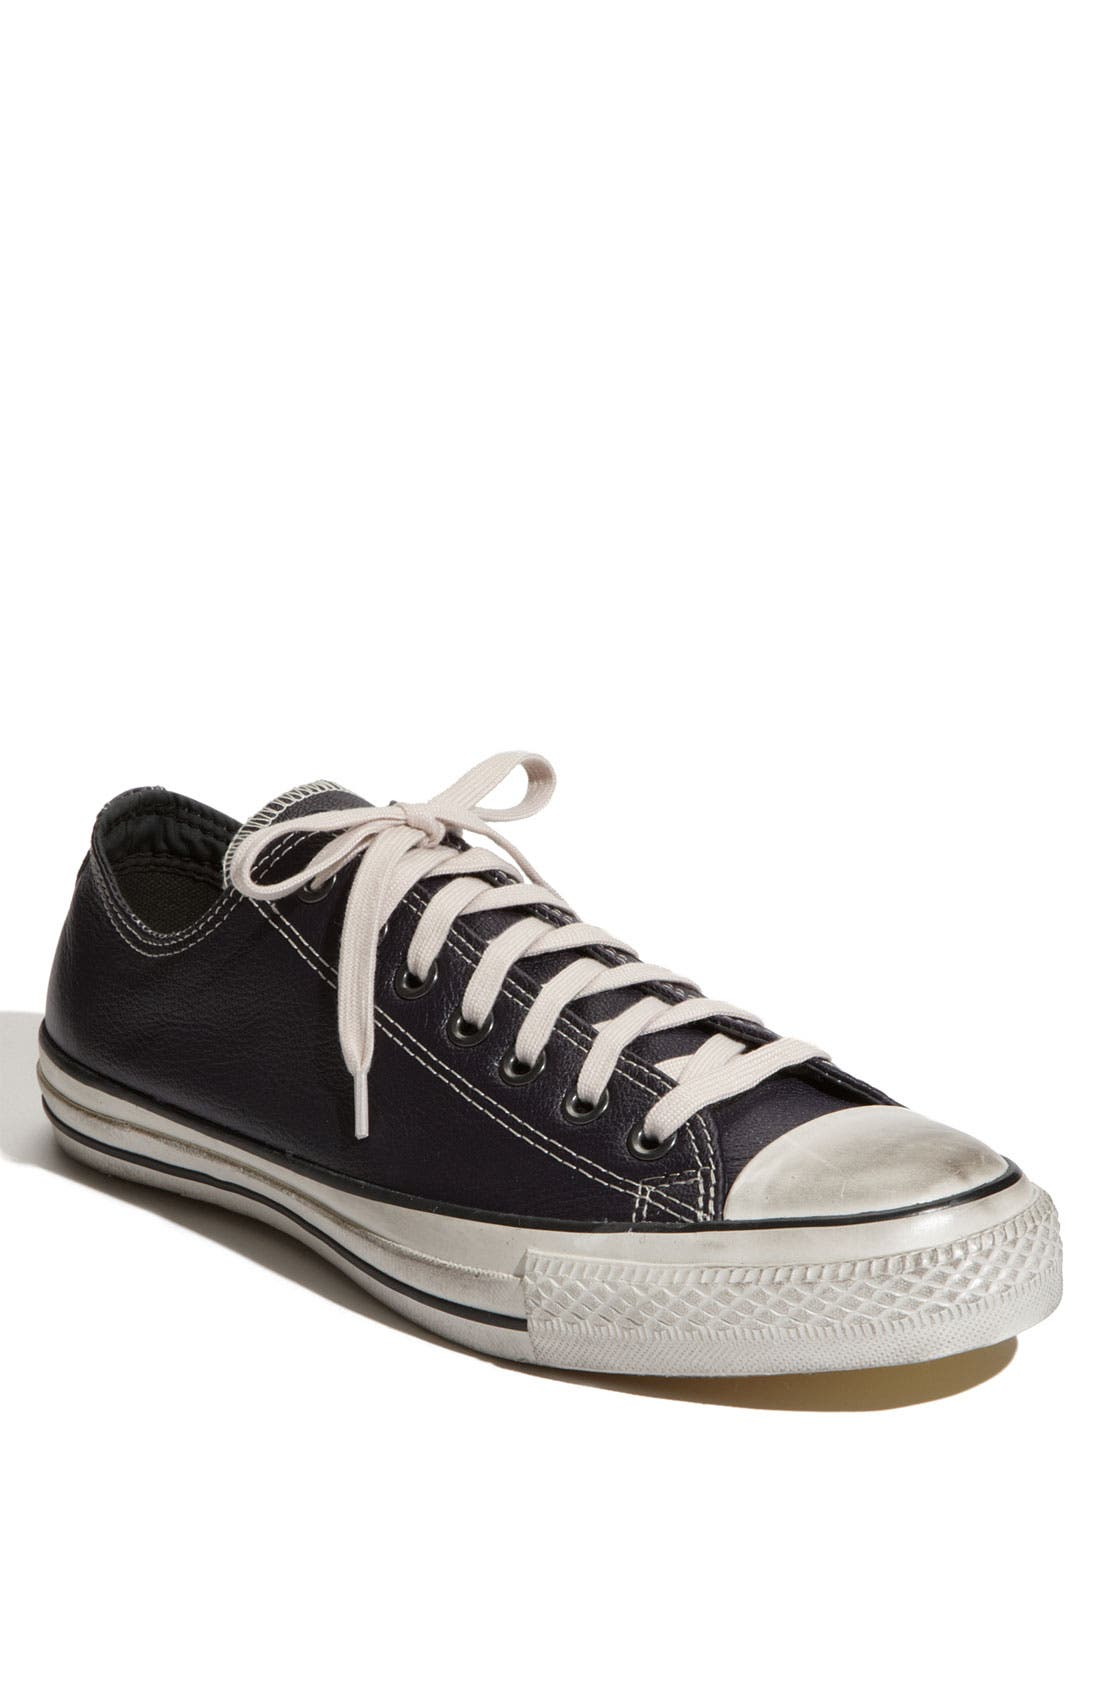 Alternate Image 1 Selected - Converse by John Varvatos Sneaker